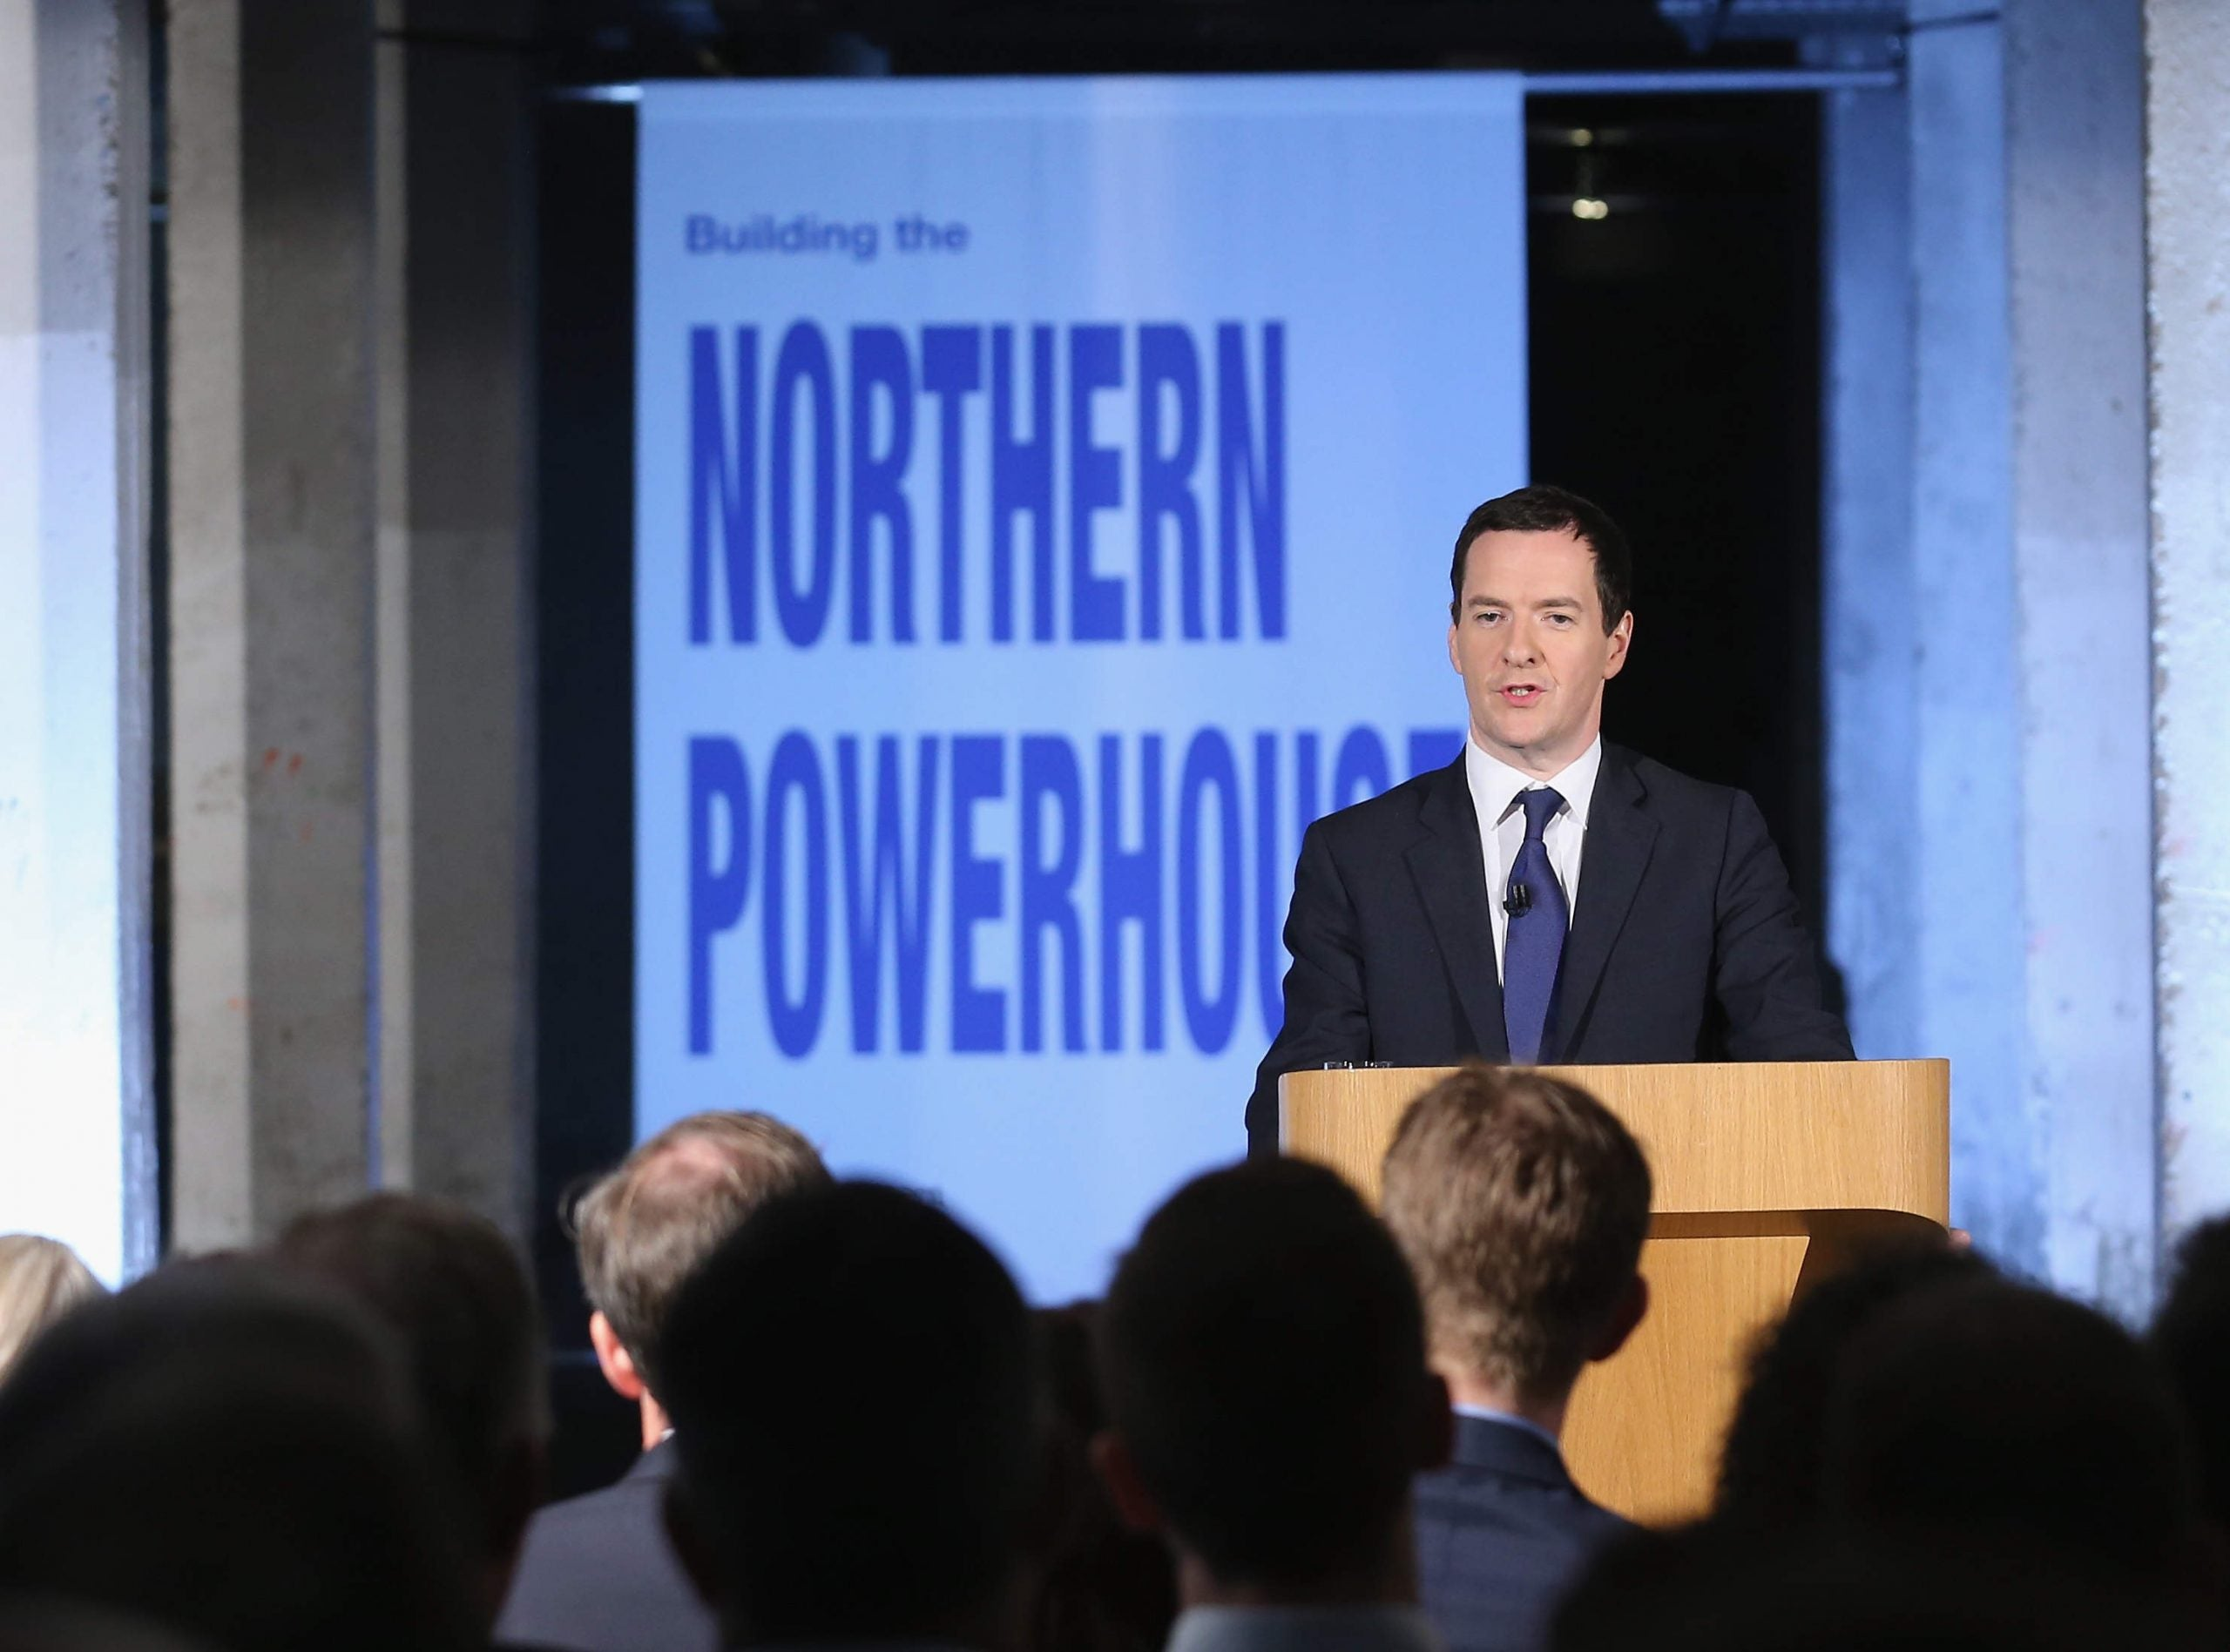 The Conservatives are so committed to the Northern Powerhouse they've moved it to London